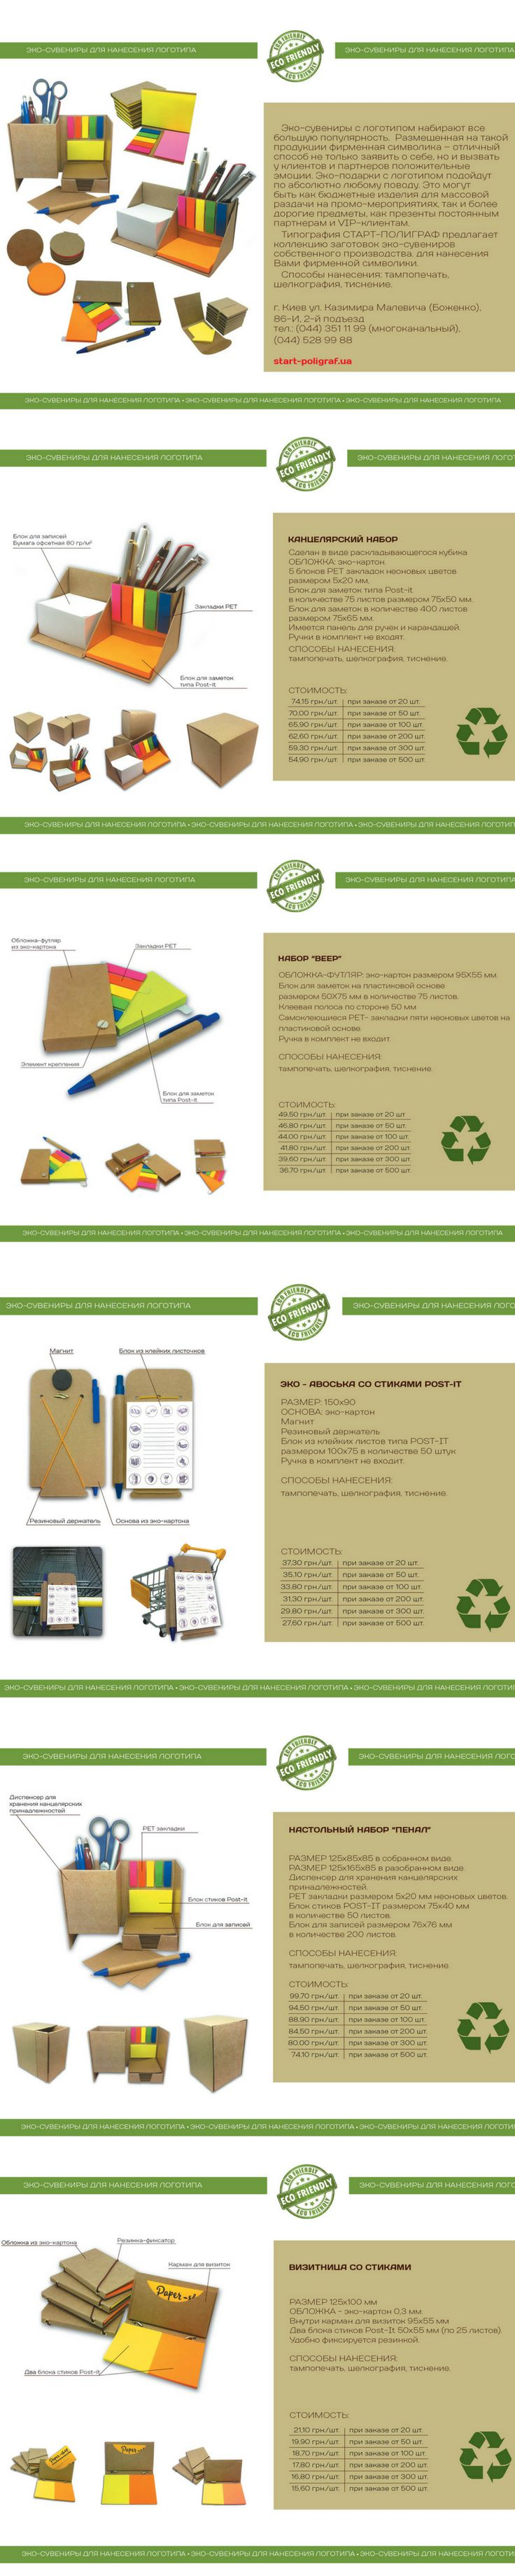 Эко сувениры | Eco friendly | Eco promotion | Eco corporate gifts | Eco notebook | Eco office | Eco